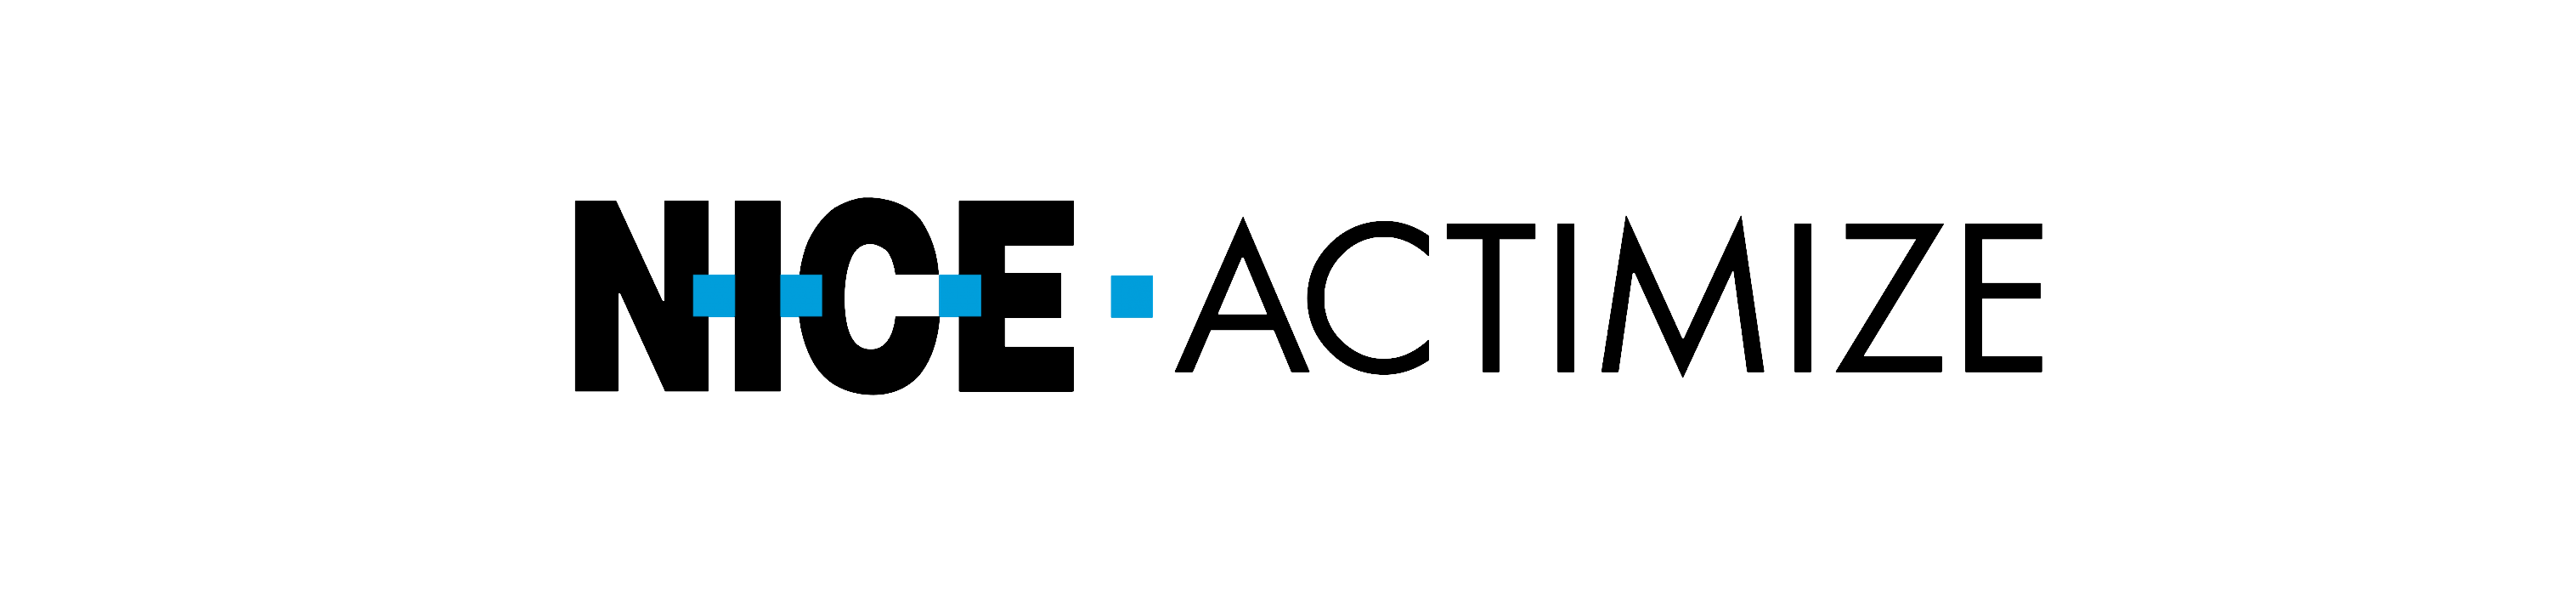 NICE Actimize's X-Sight Marketplace Offers Facial Recognition Technology for Advanced AML/KYC Risk Screening with Addition of FACEPOINT